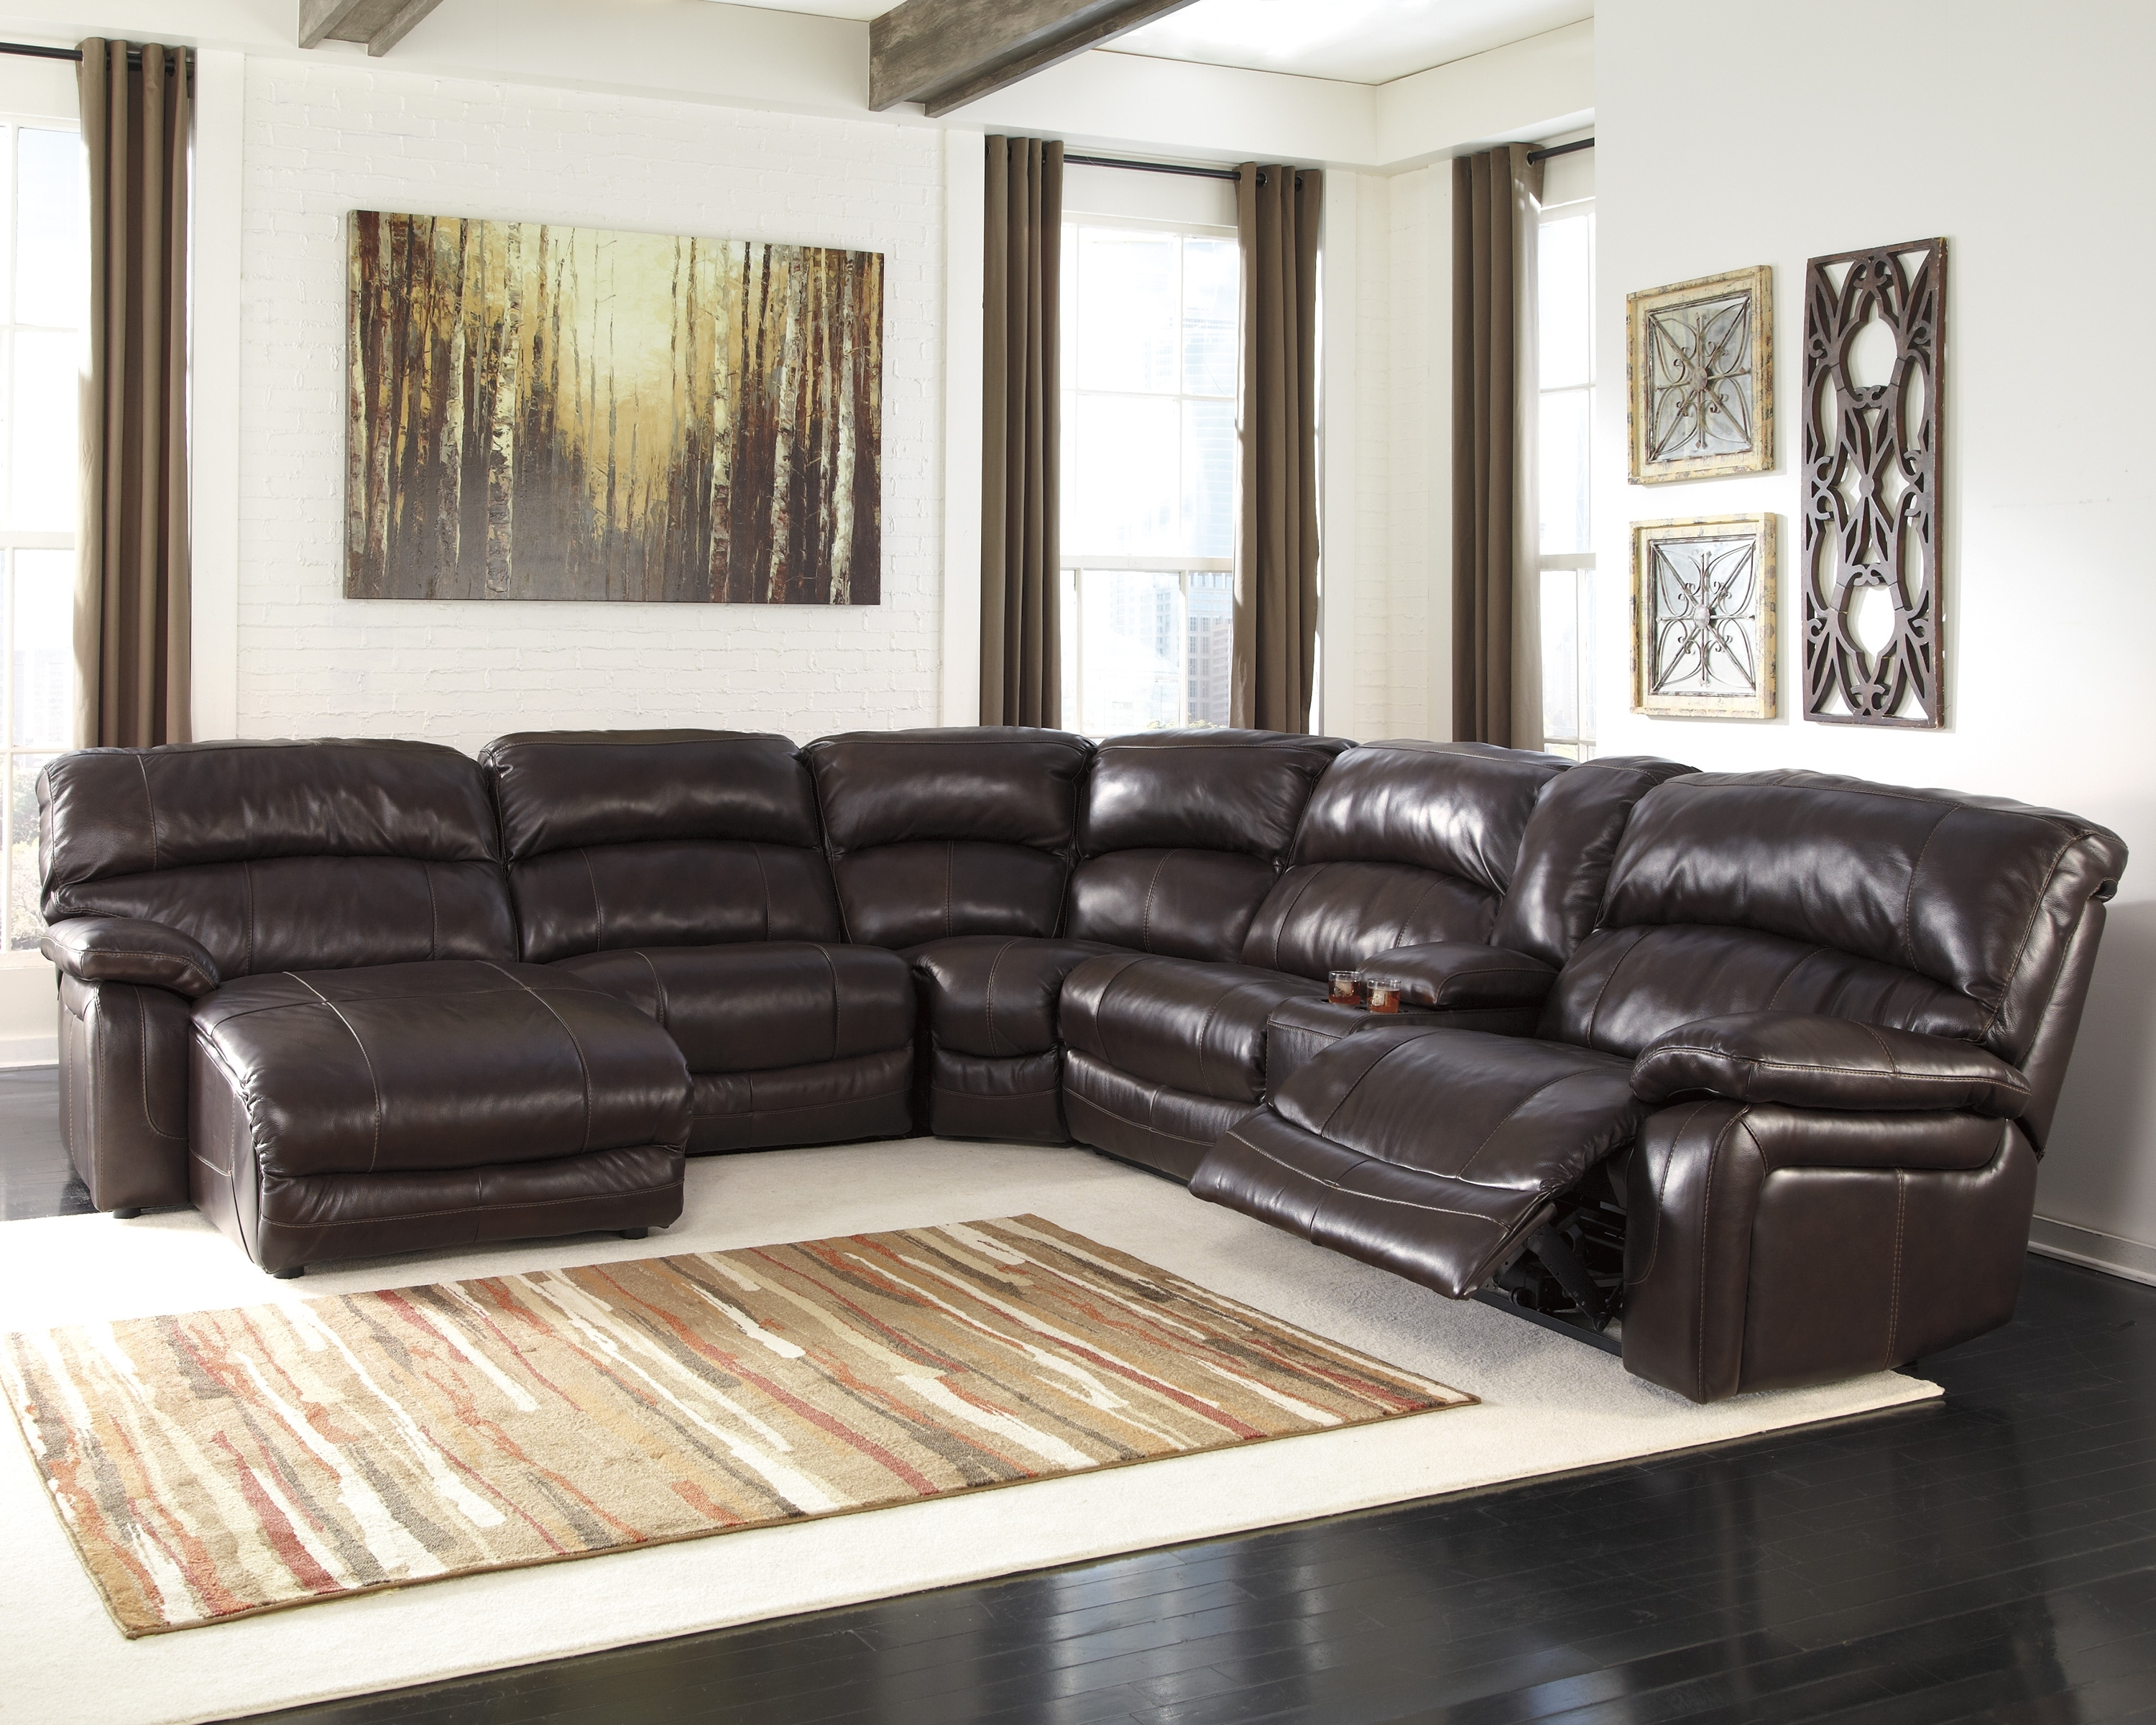 Unusual Sofa In 2018 Furniture : Raymour And Flanigan Leather Sofa Of Furniture Unusual (View 10 of 20)